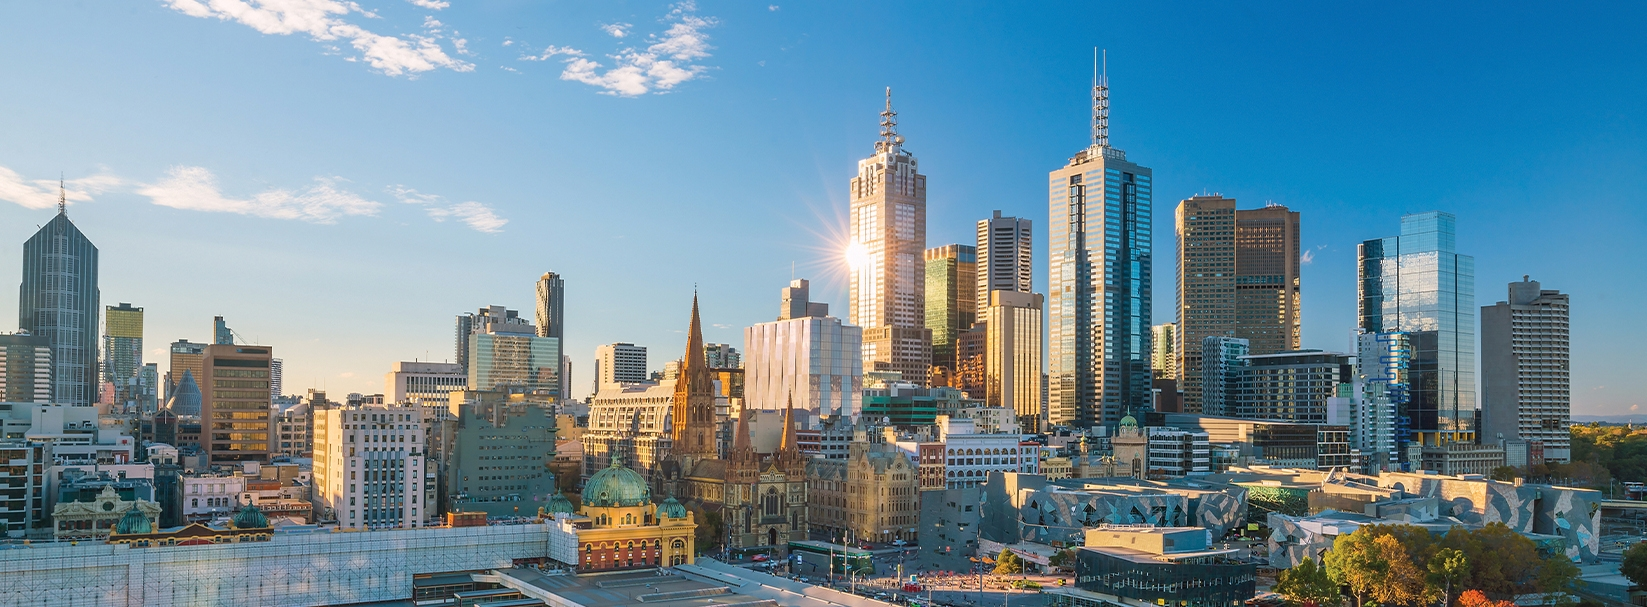 Education and coworking space drive deals in Melbourne's 2017 office leasing market